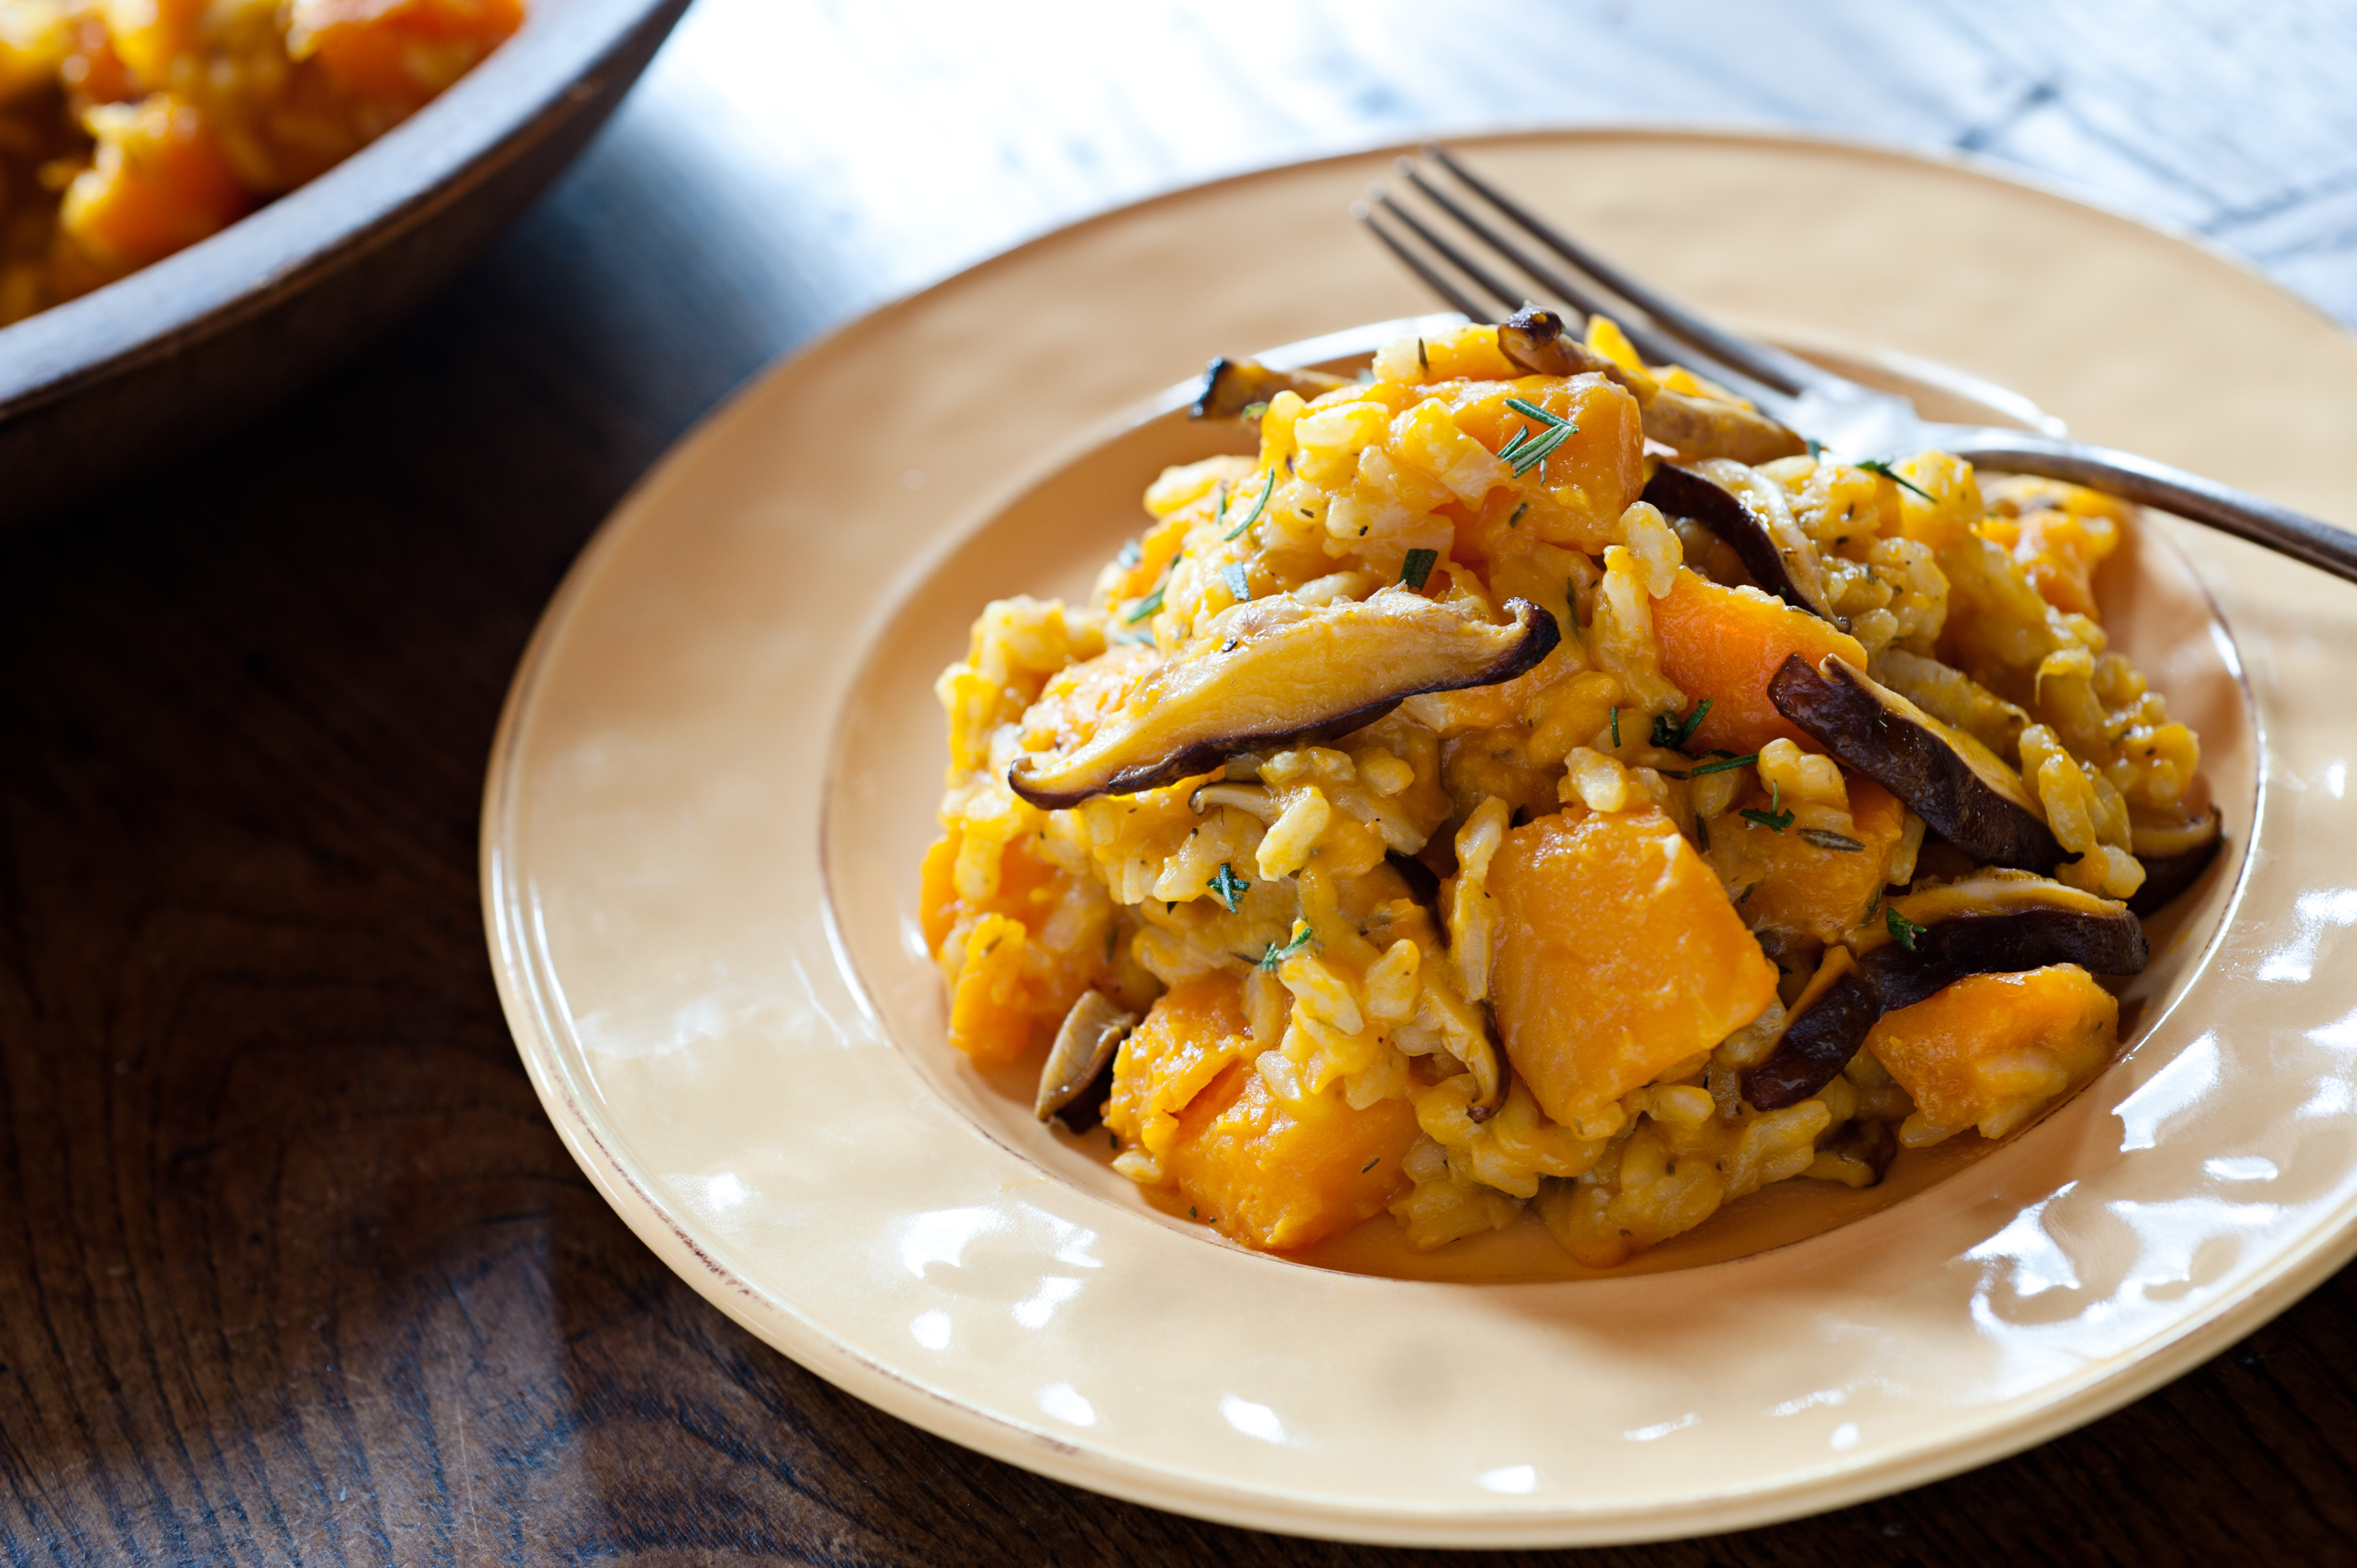 Shiitake Mushroom Risotto with Saffron and Butternut Squash